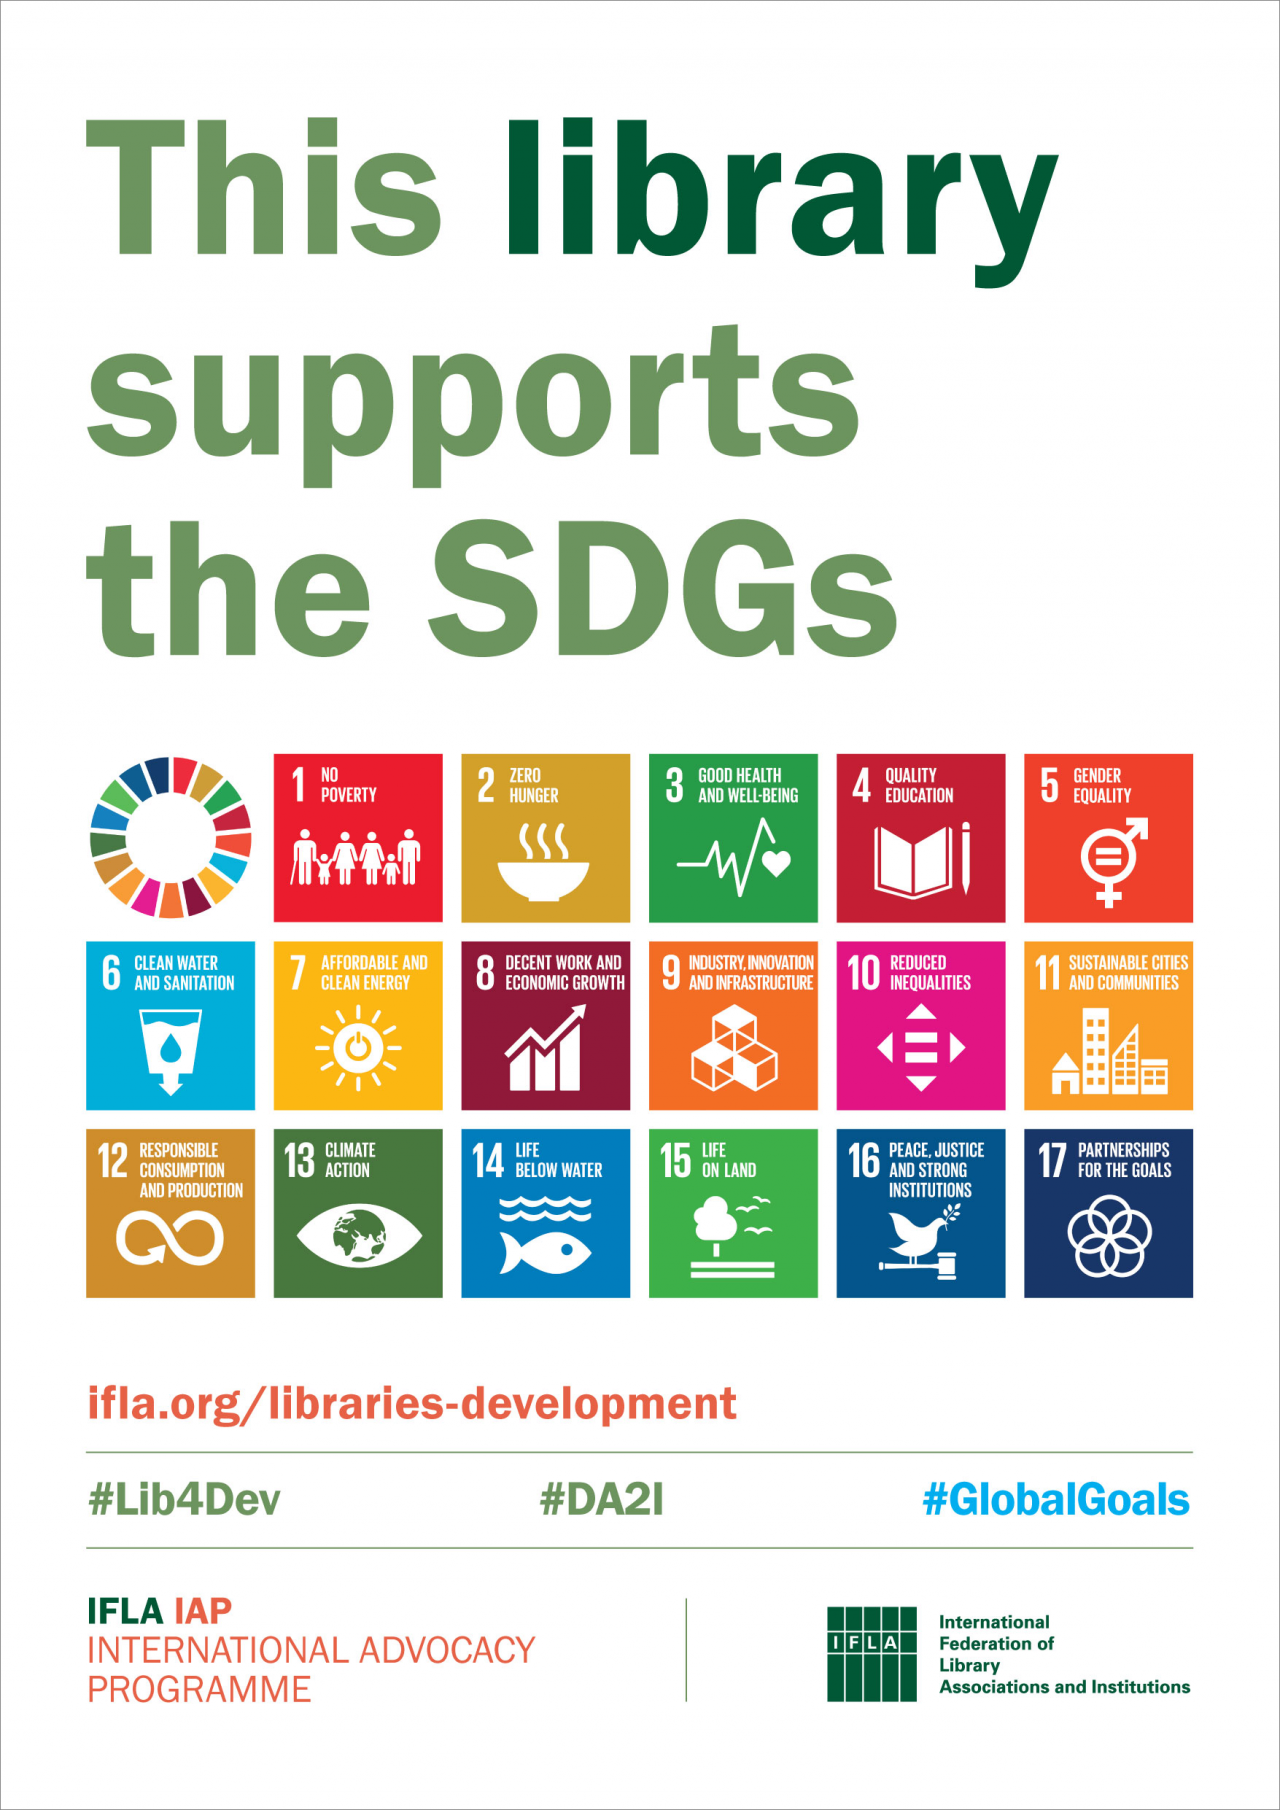 This library supports the SDGs